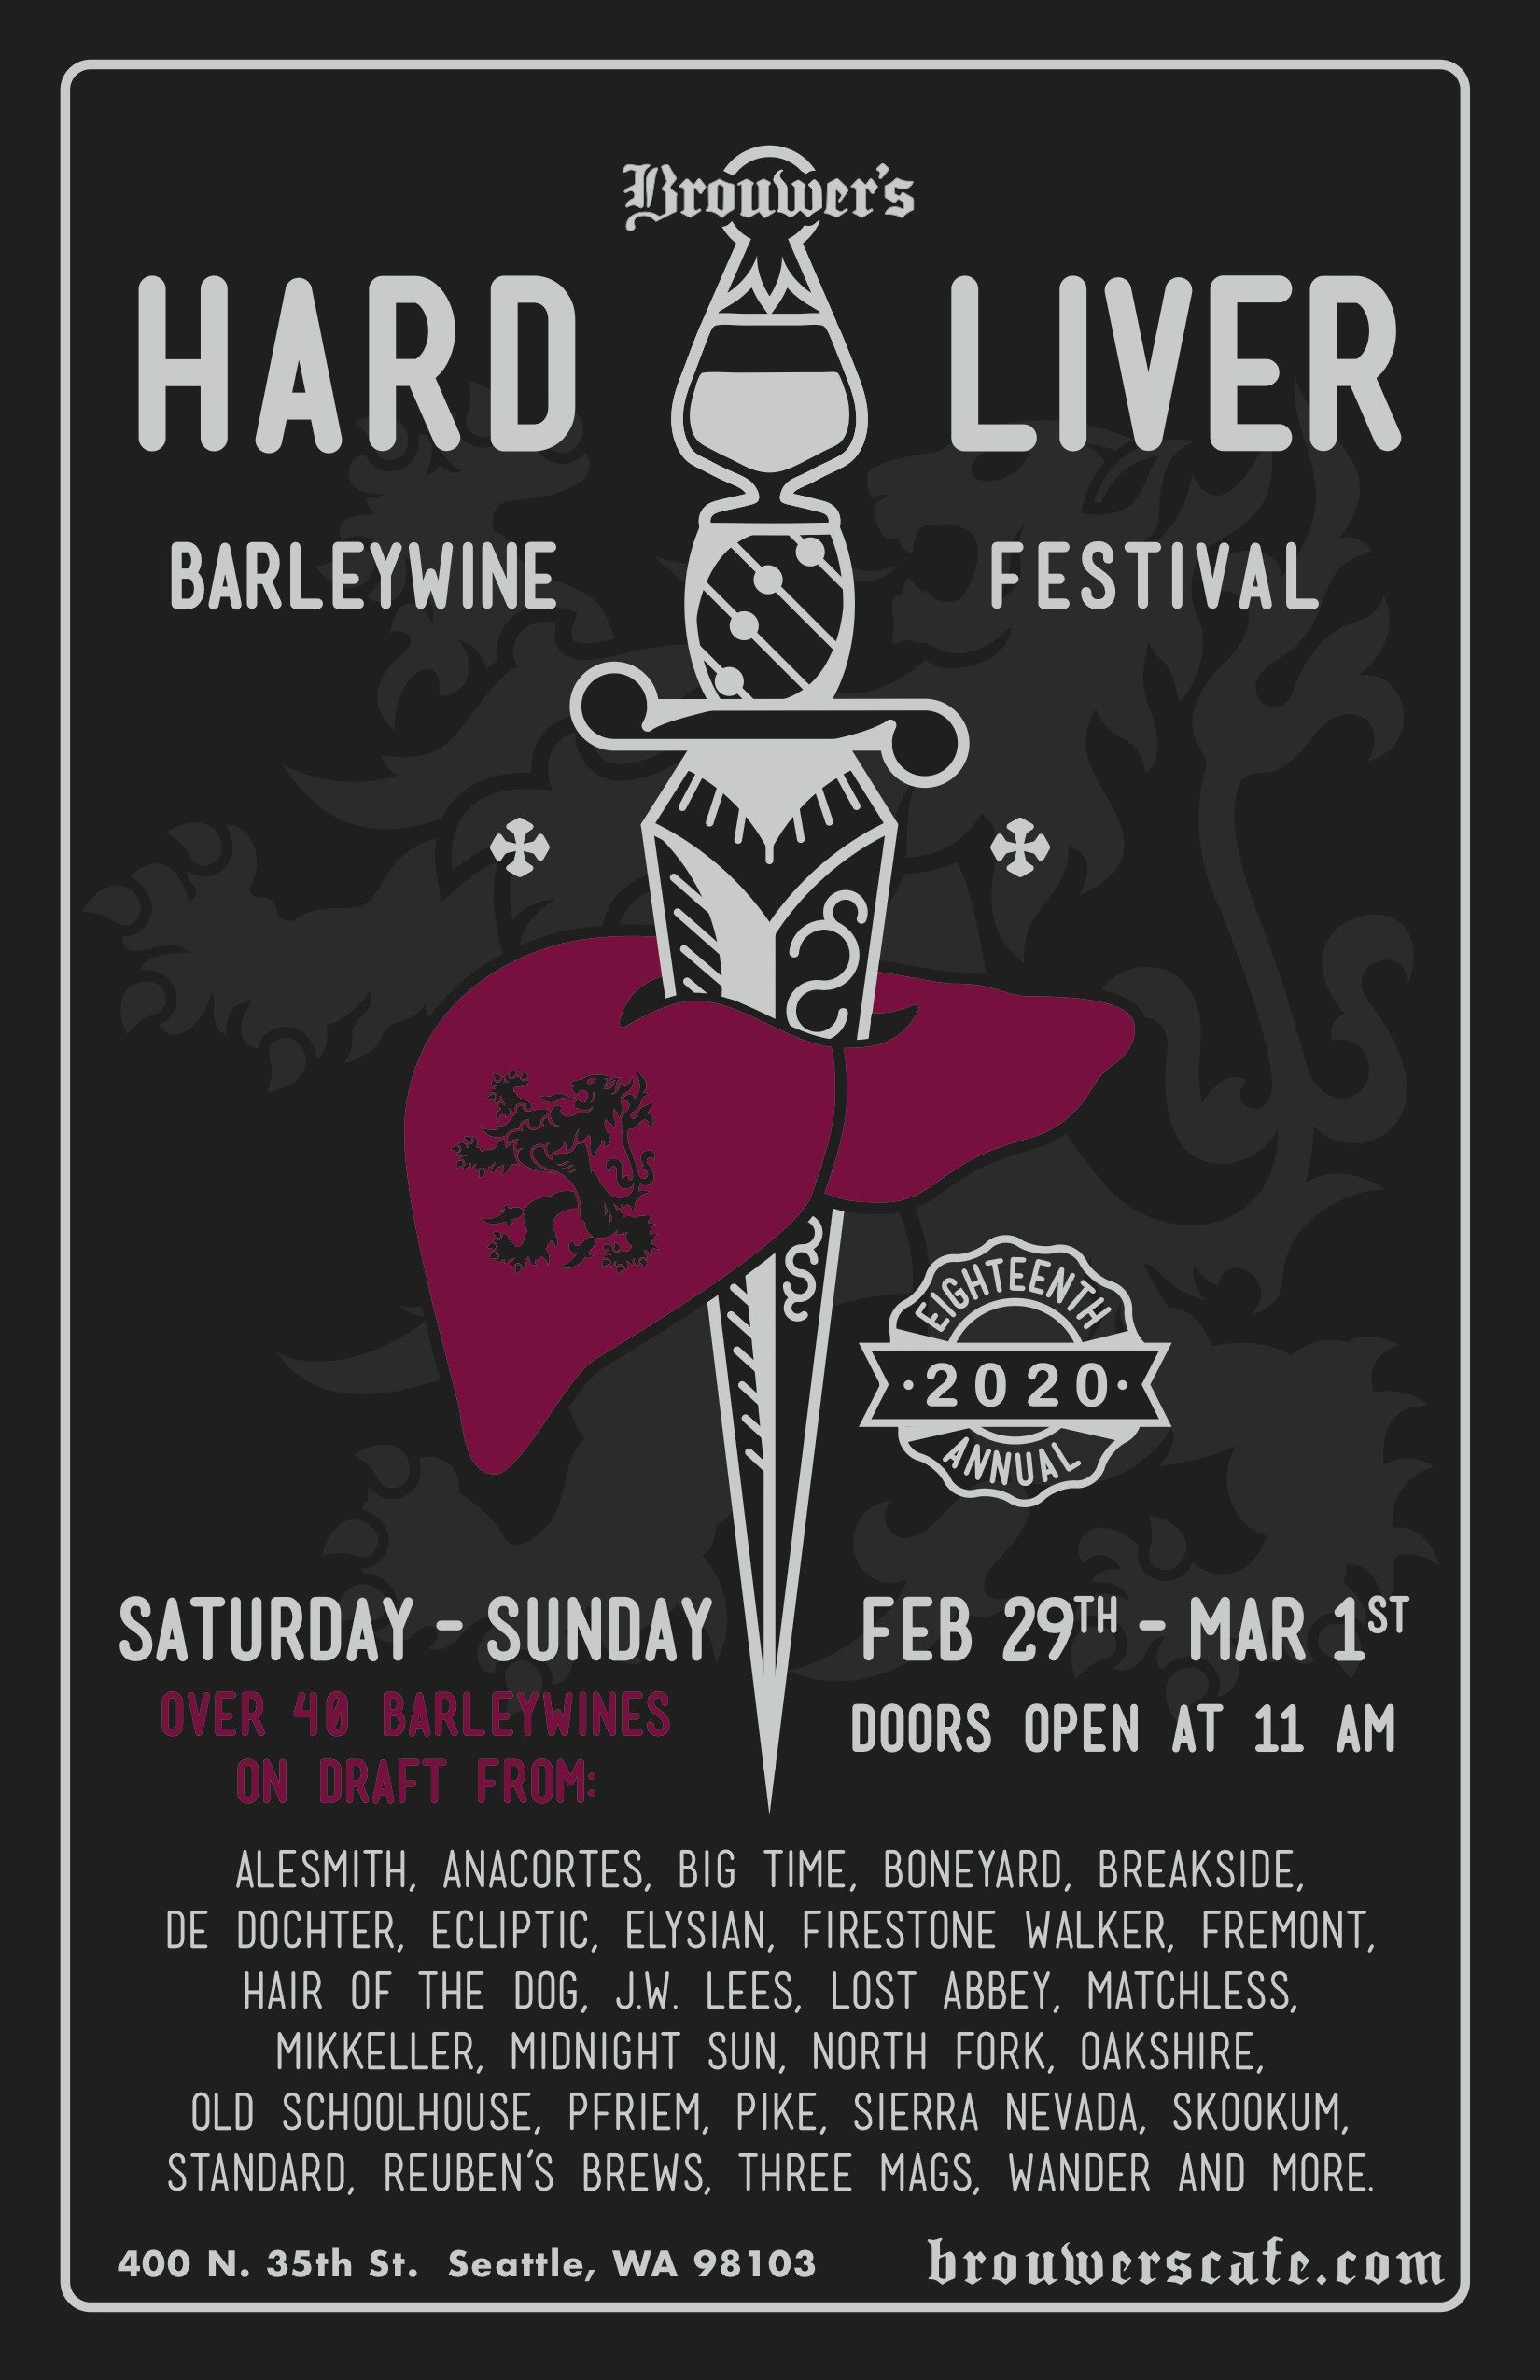 Saturday, February 29th and March 1st, 18th Annual Hardliver Barleywine Fest